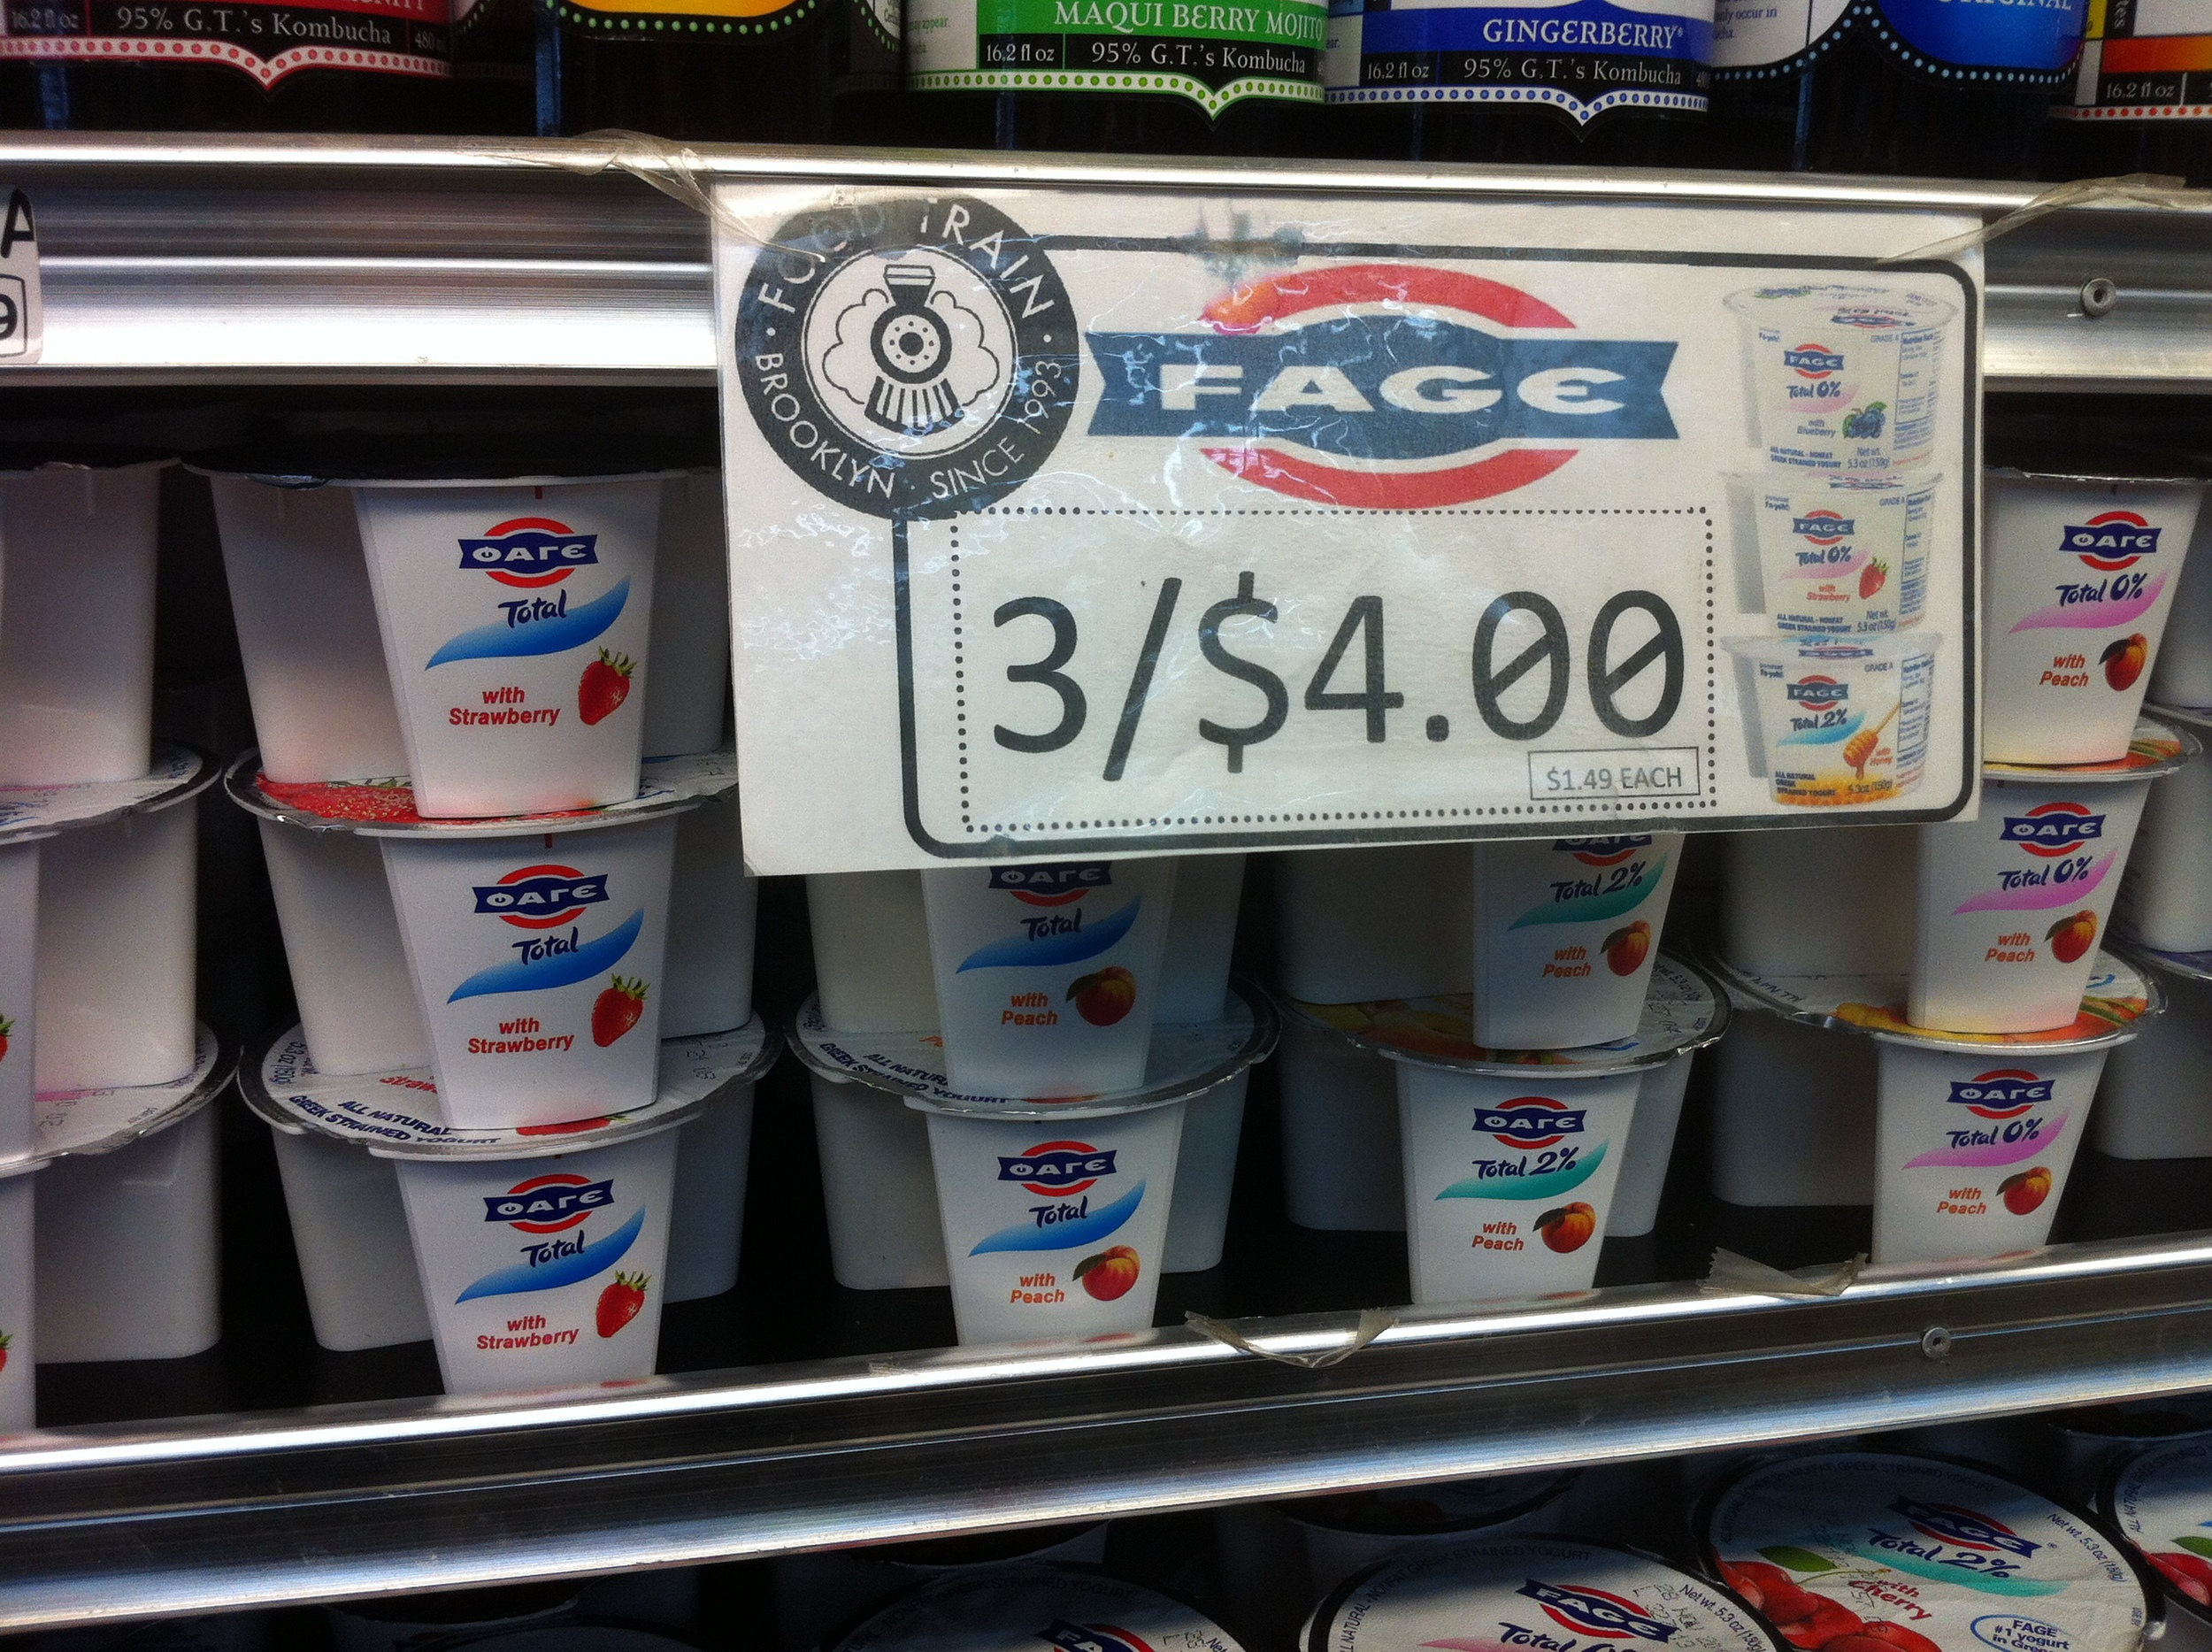 Fage Yogurt